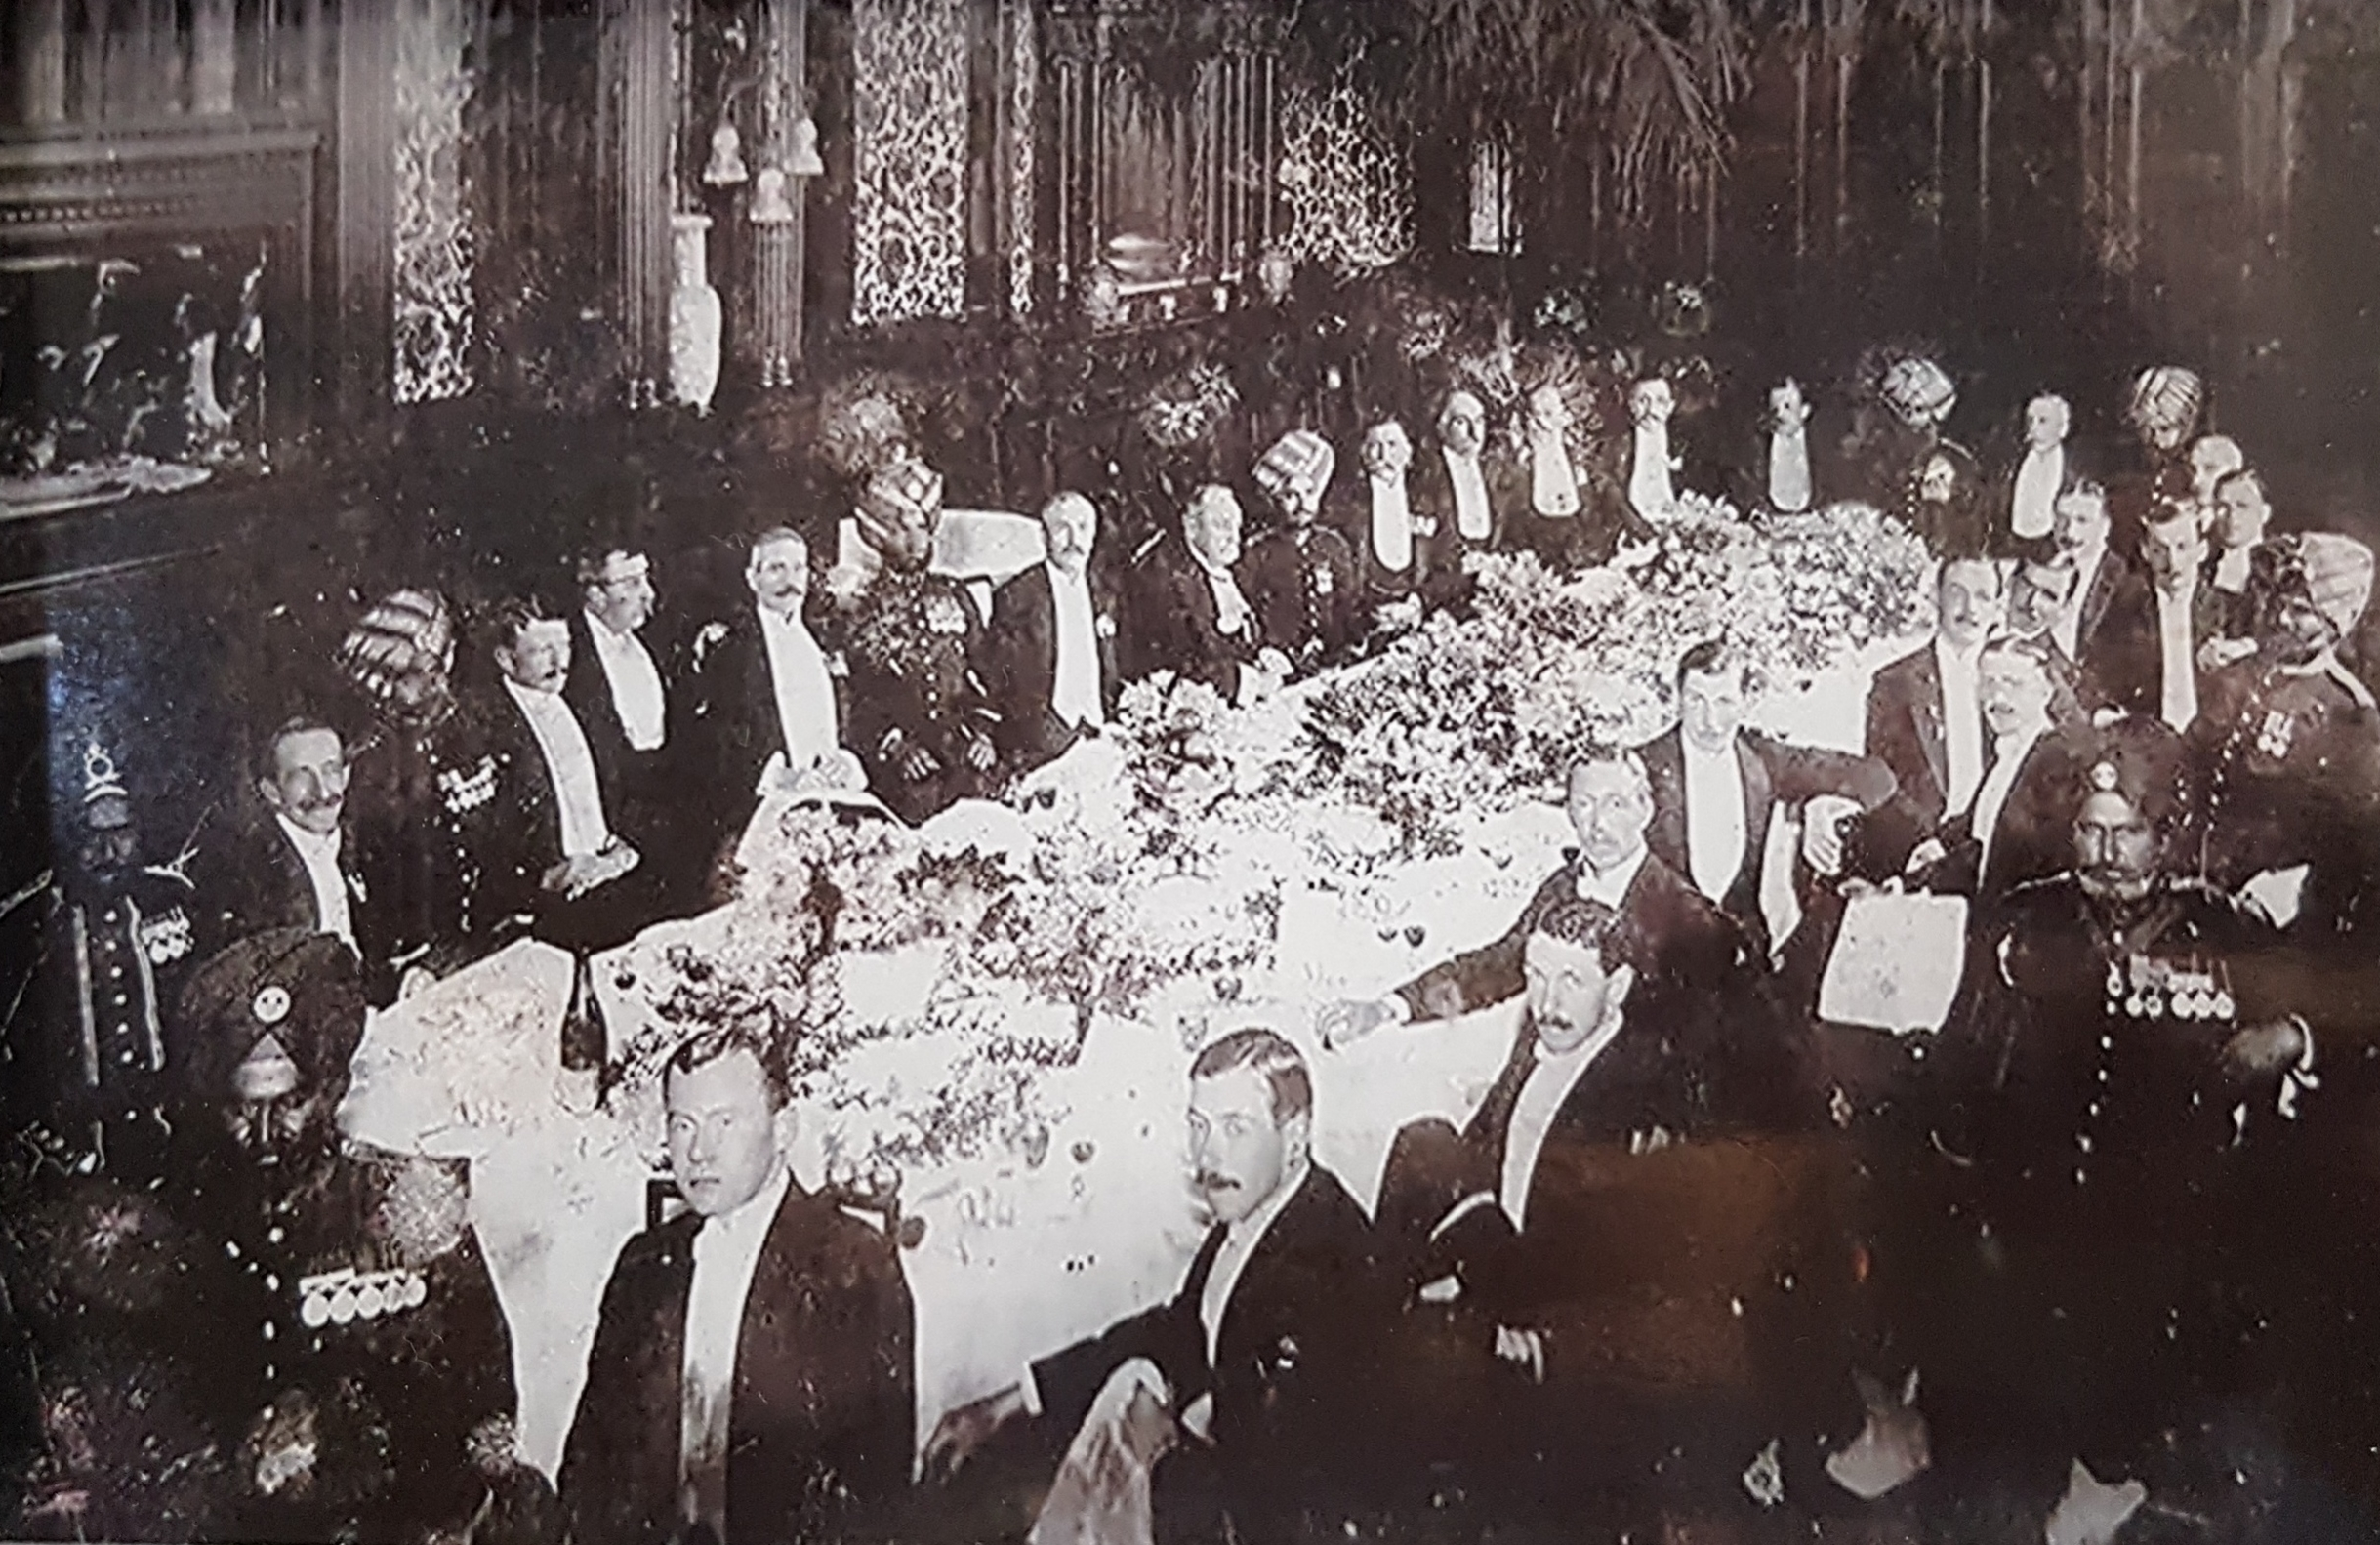 Regimental dinner, England, 1911